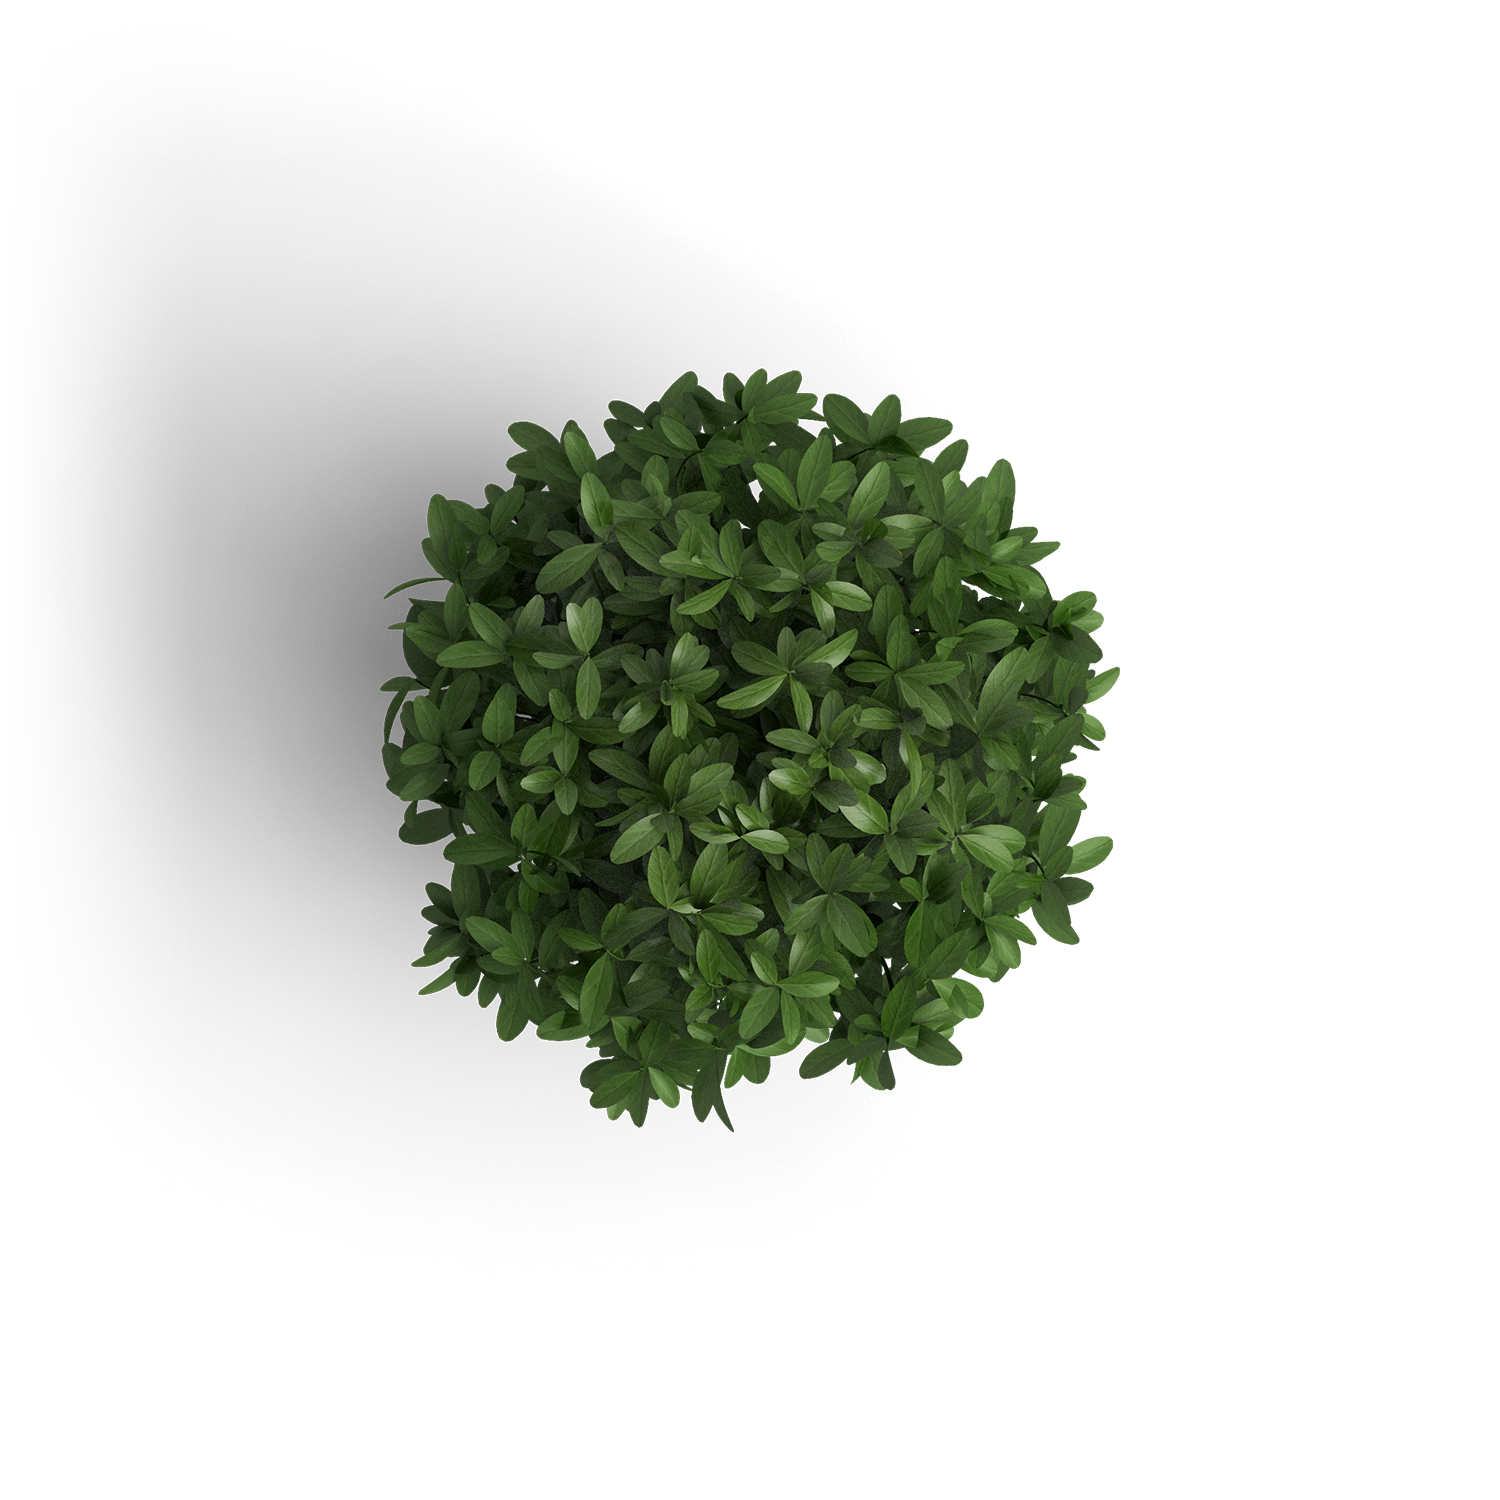 object_plant_1.png